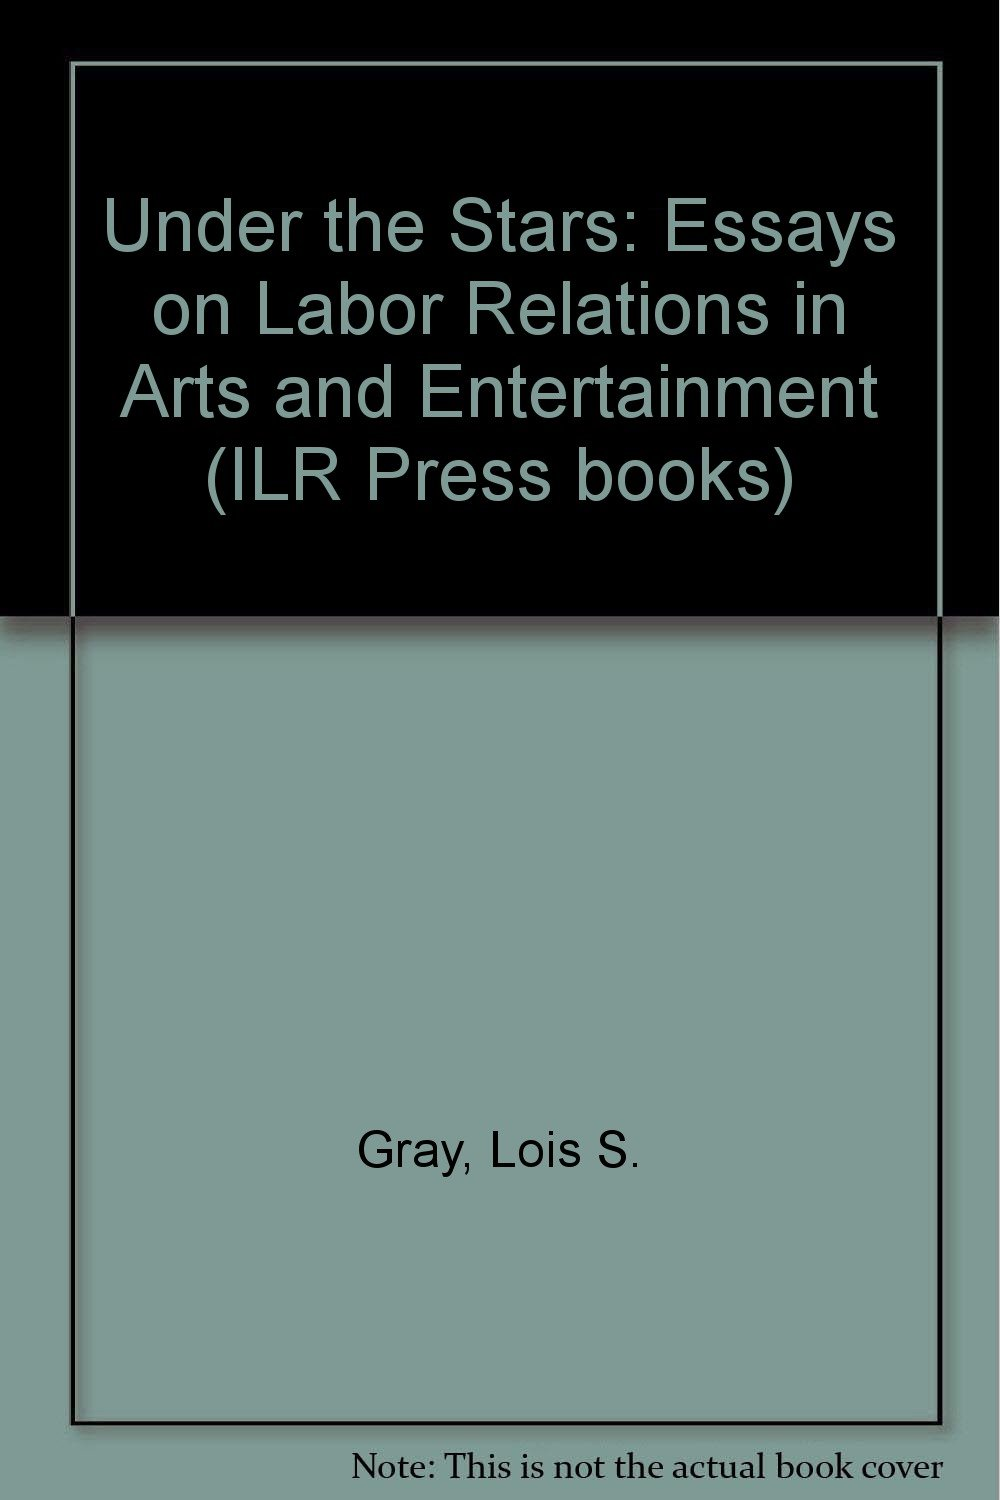 Under the Stars: Essays on Labor Relations in Arts and Entertainment (ILR Press Books)